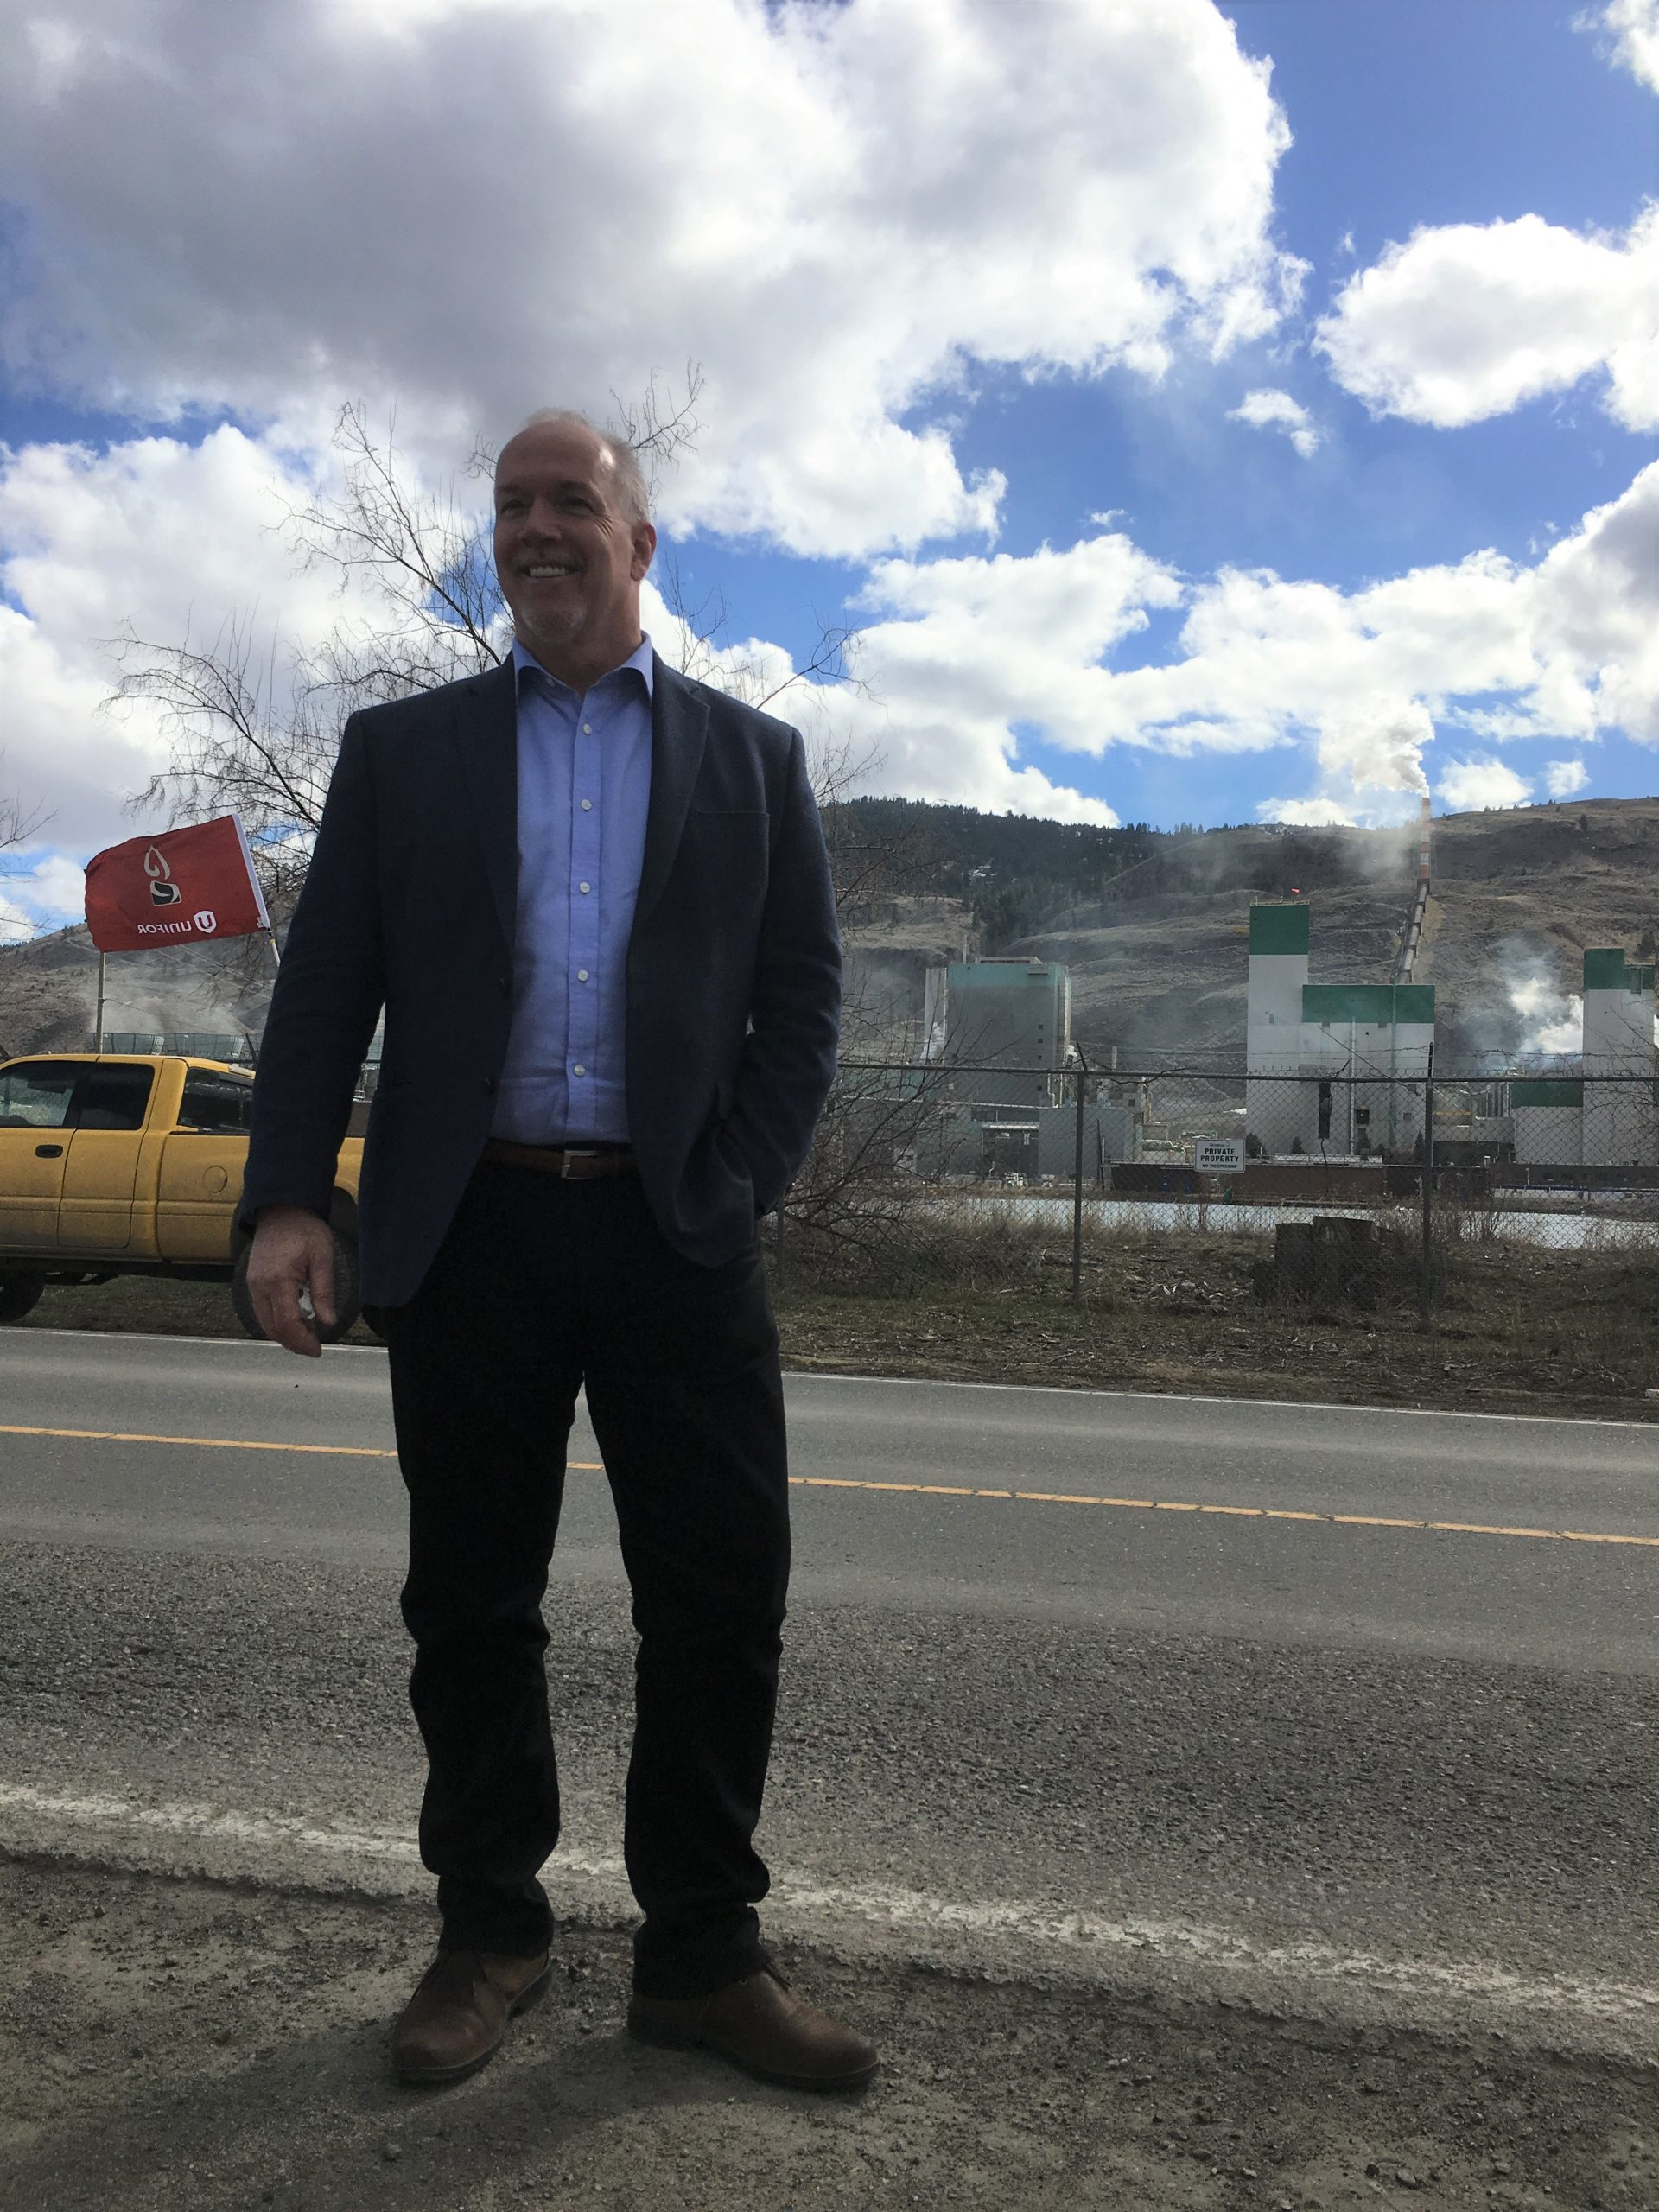 B.C Premier expressing concerns around pending marijuana legalization